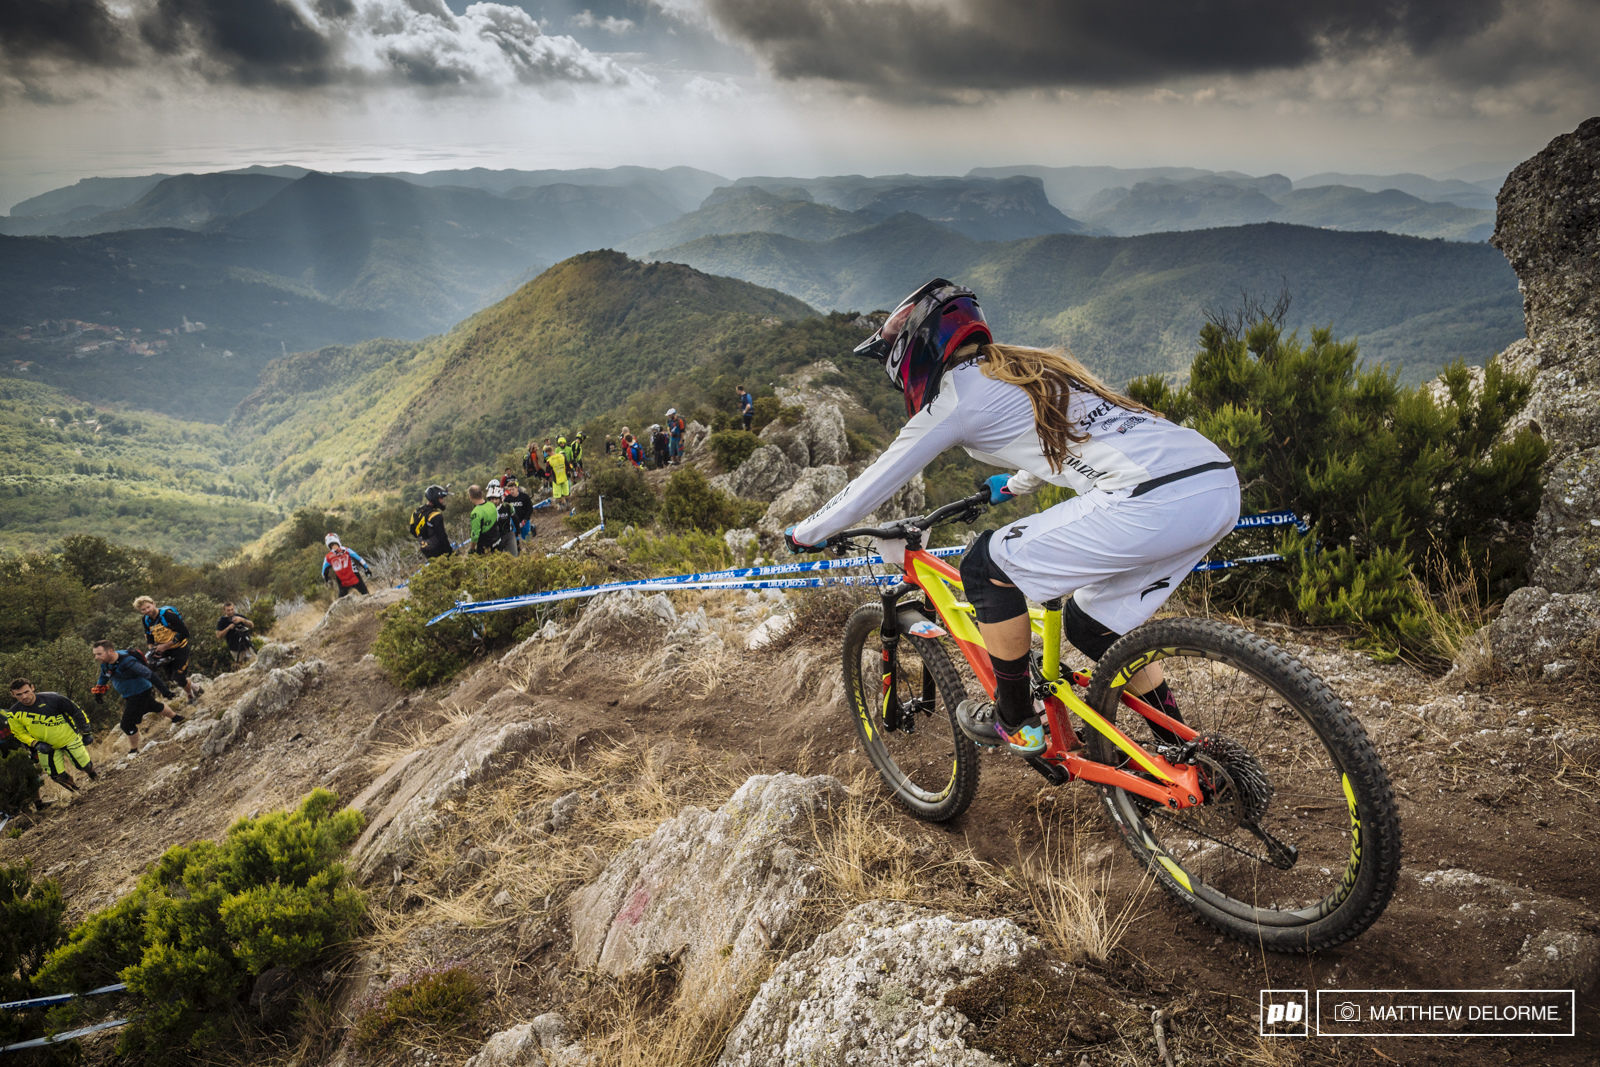 Hannah Barnes having no troubles on the ridge of stage five. Those whites stayed crispy clean.